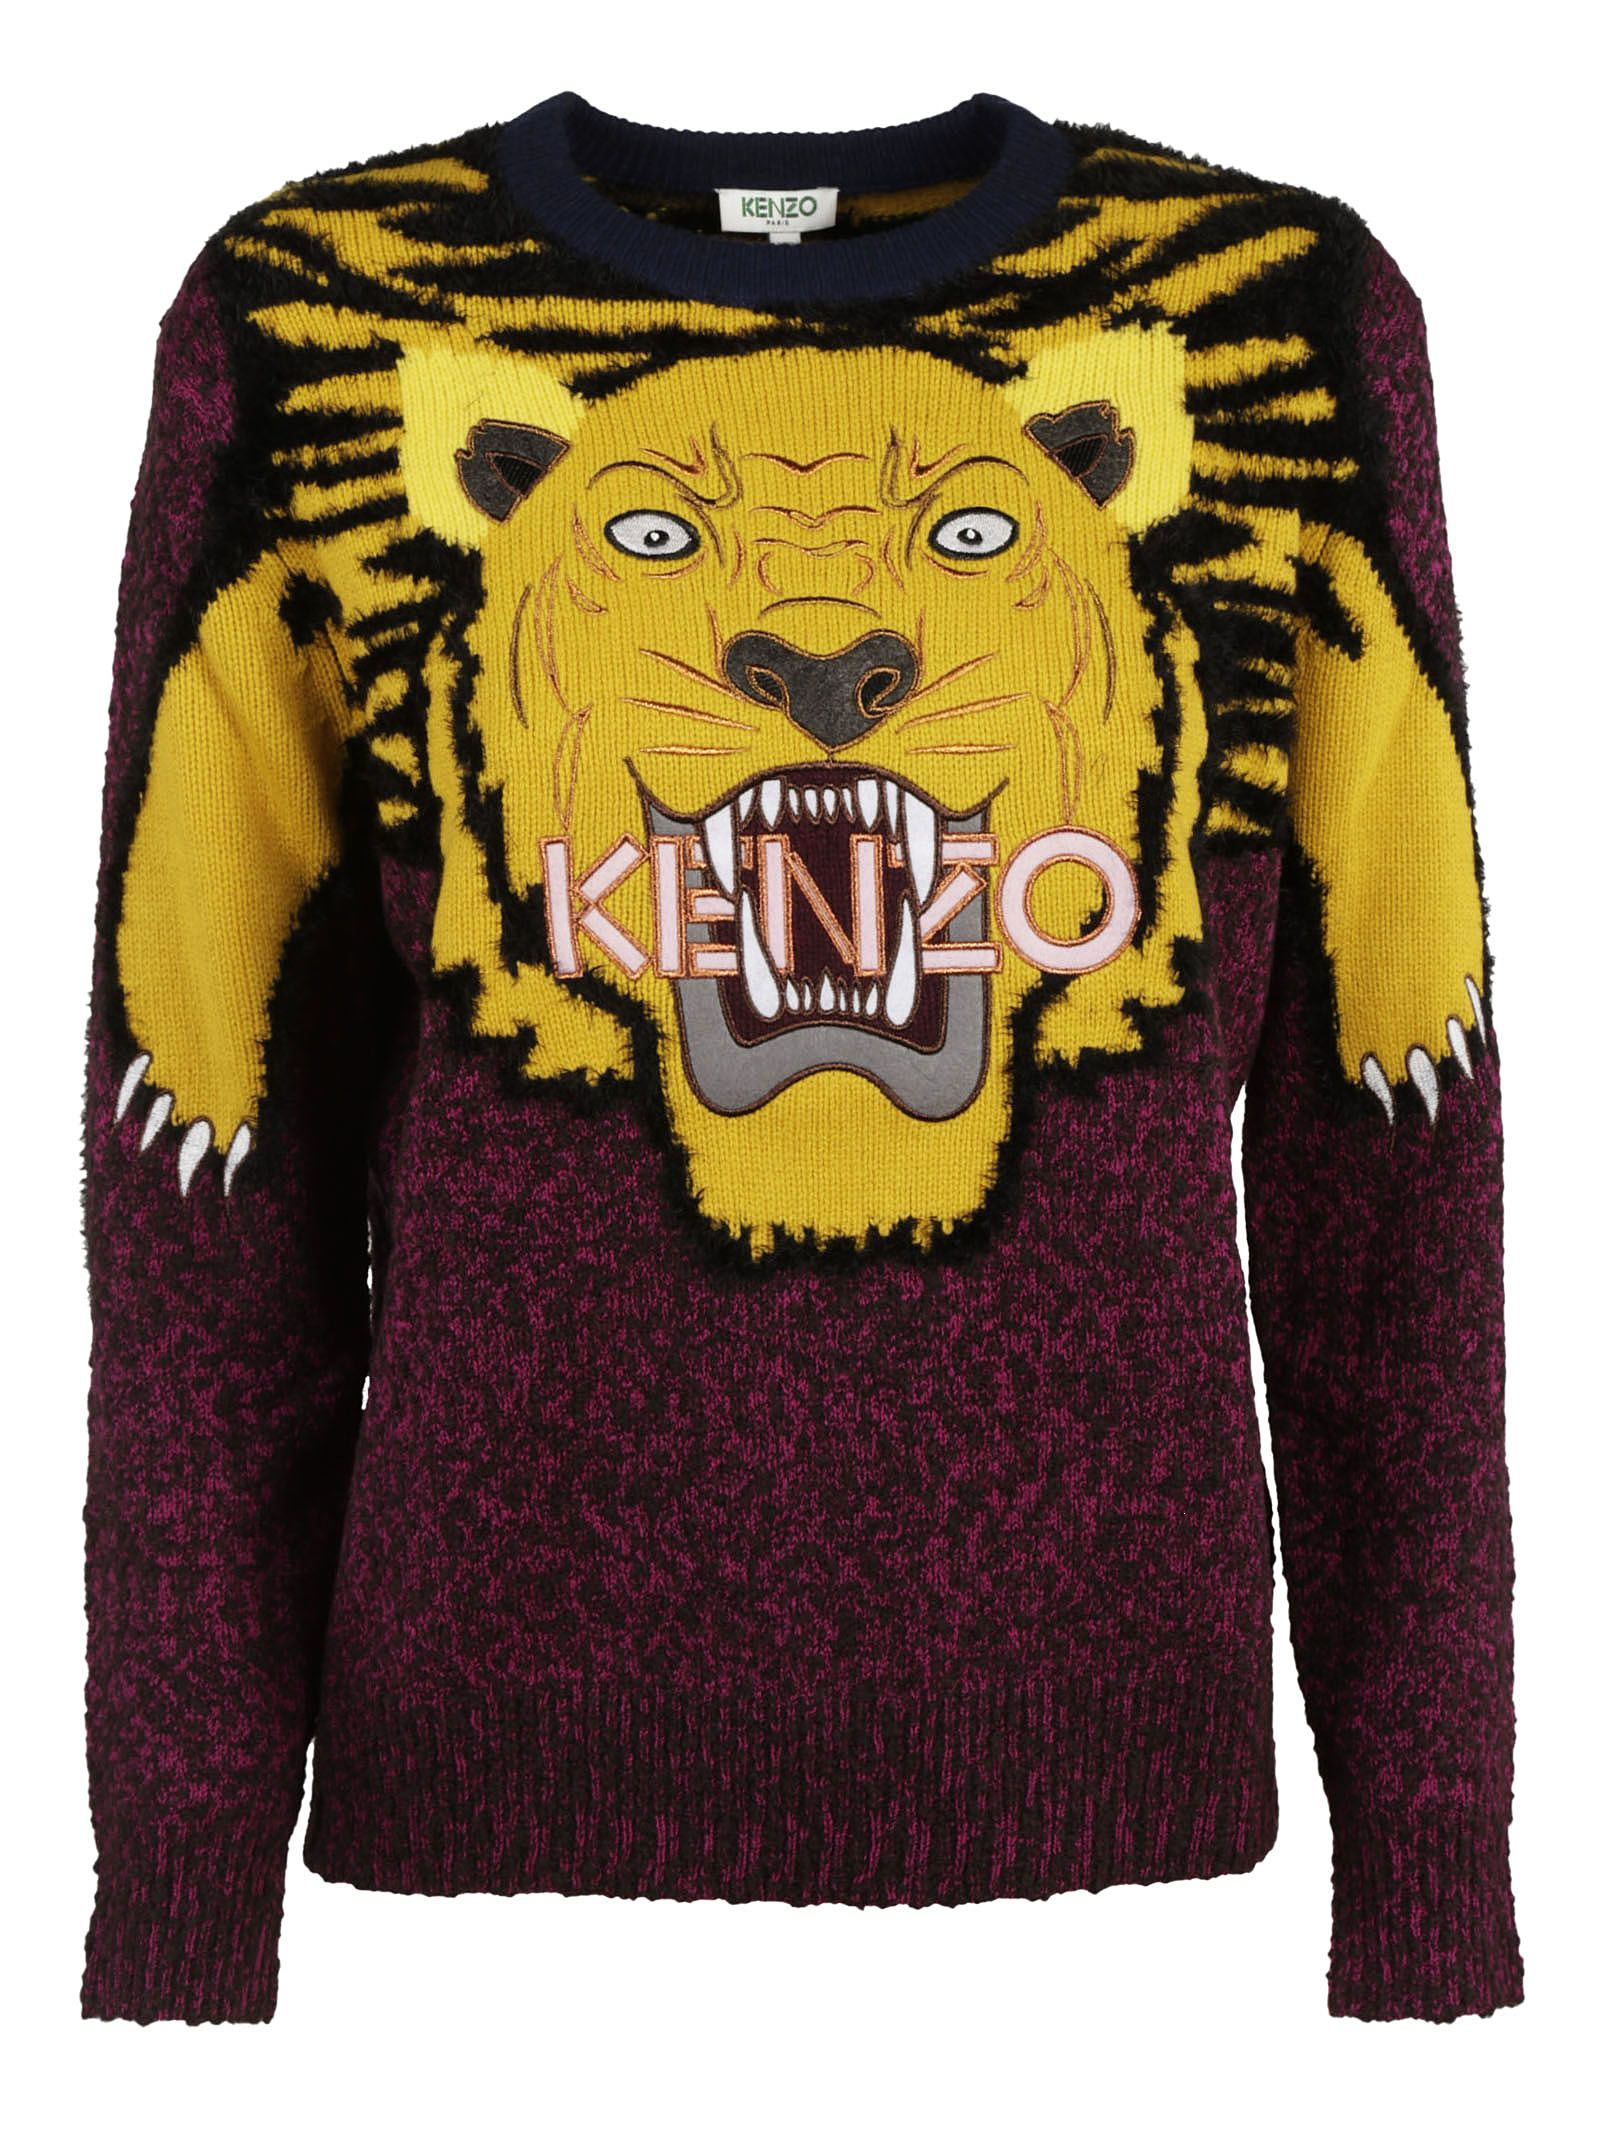 kenzo kenzo embroidered tiger sweater fuxia women 39 s sweaters italist. Black Bedroom Furniture Sets. Home Design Ideas